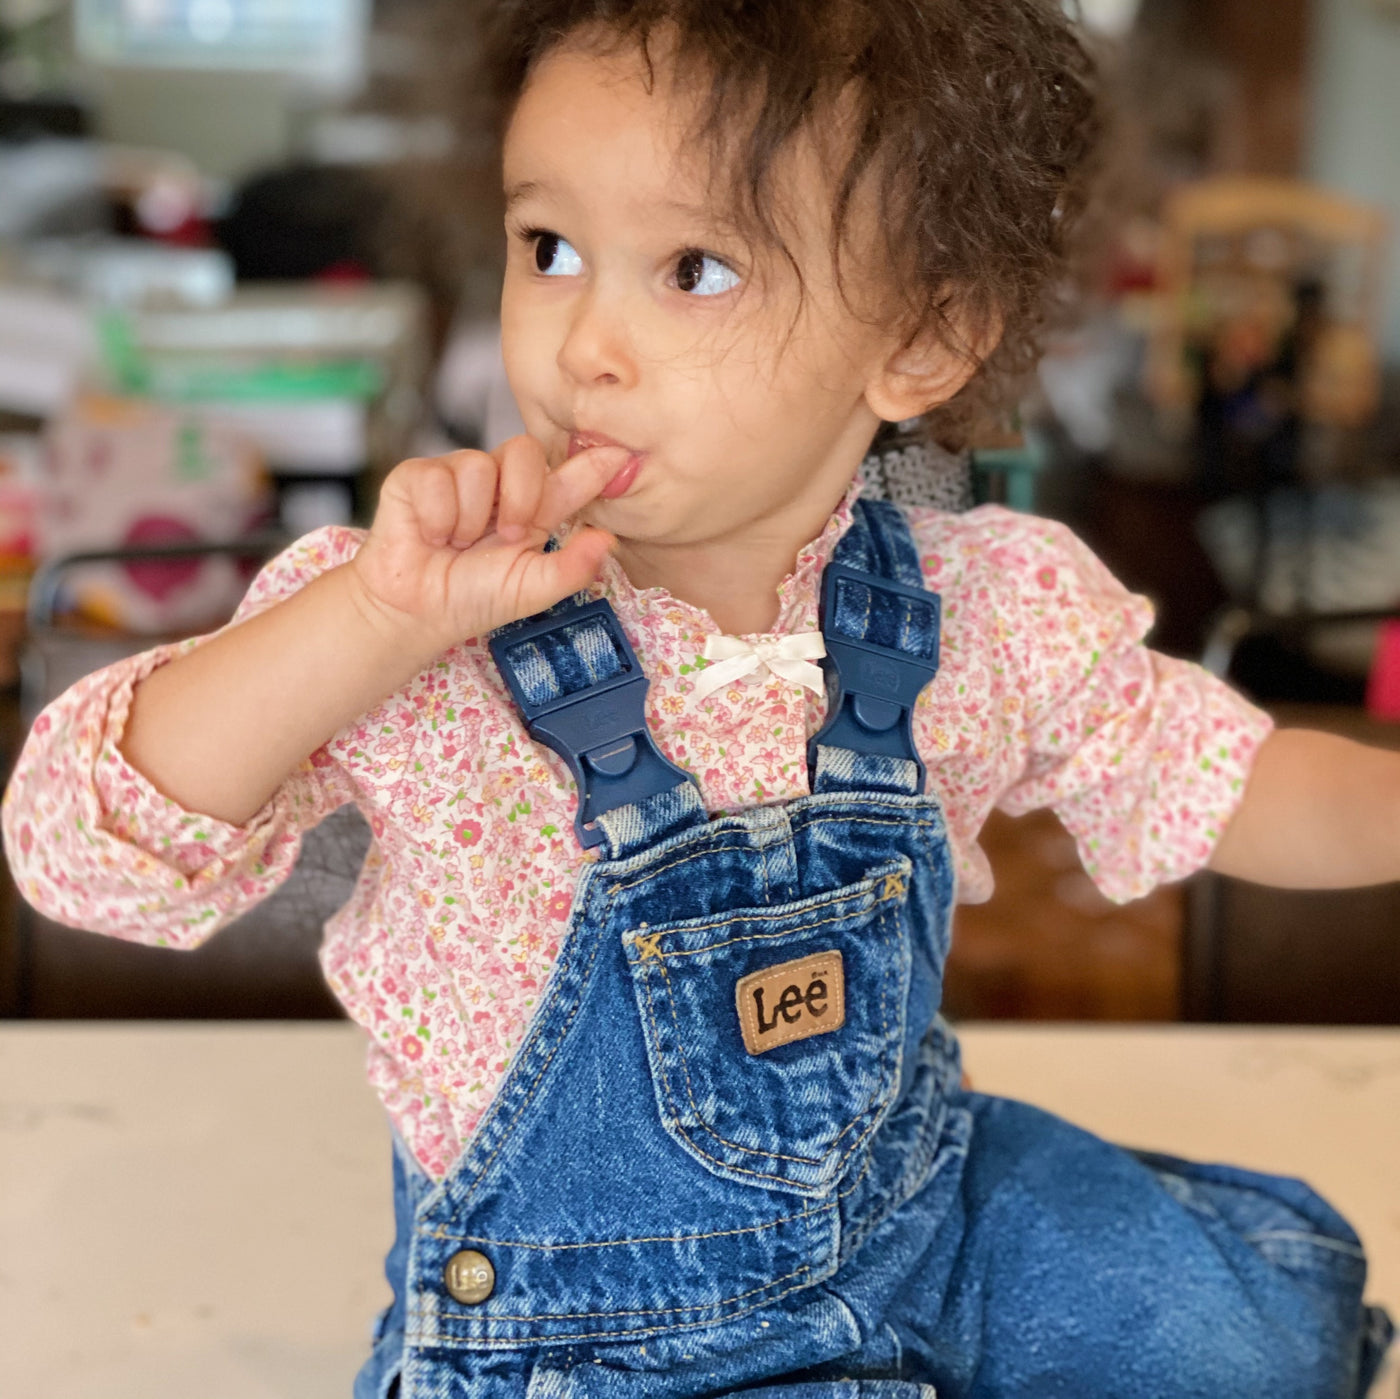 Vintage The World's Most Perfect Denim Lee Overalls / Size 18M